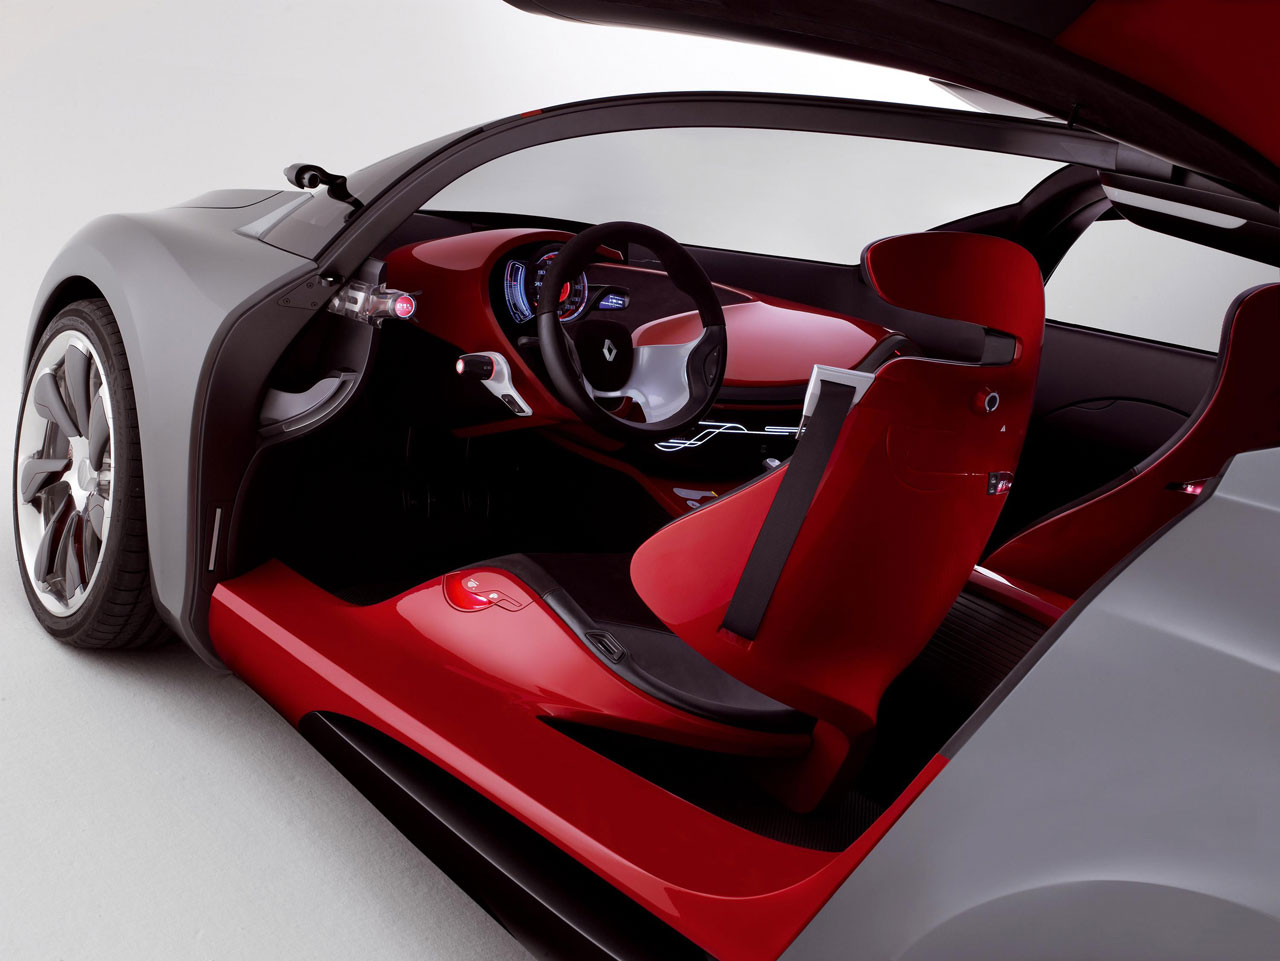 renault megane coupe concept car body design. Black Bedroom Furniture Sets. Home Design Ideas